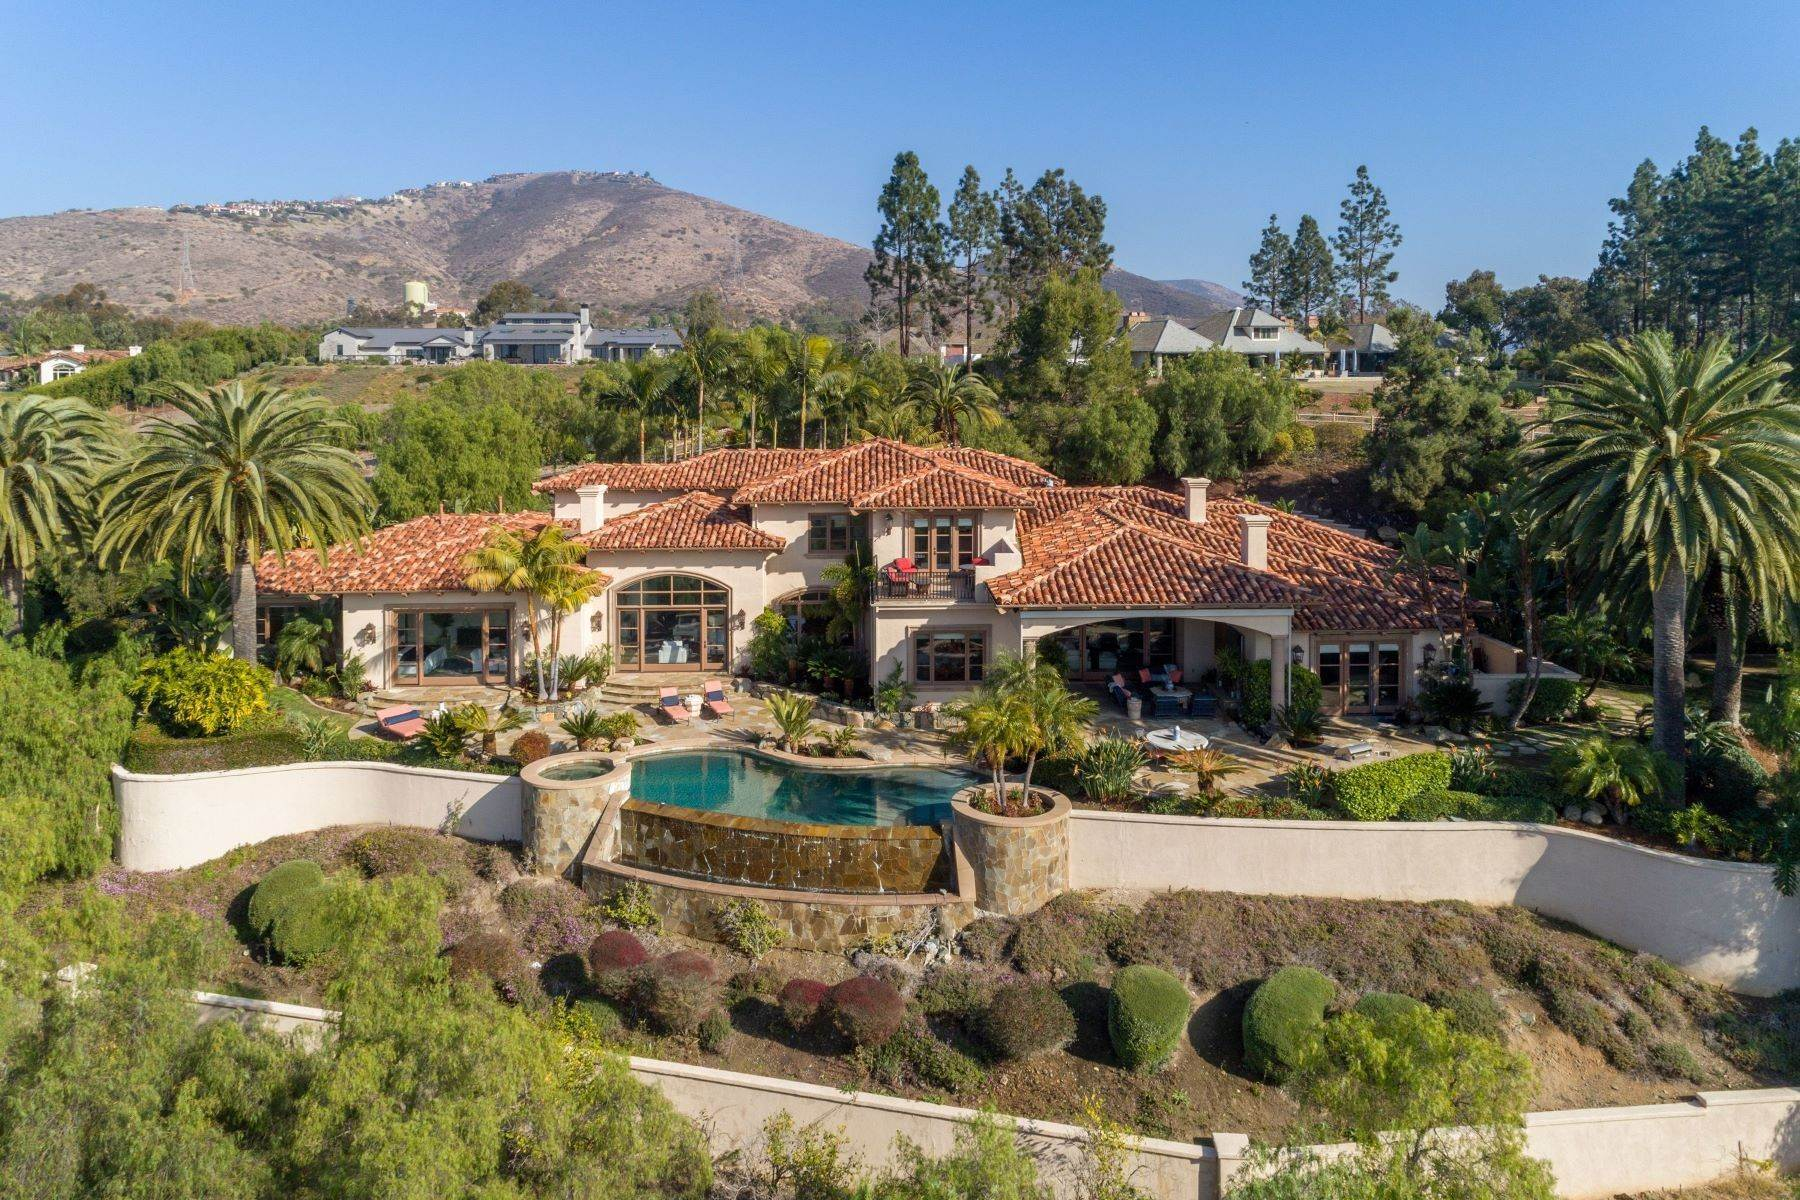 Single Family Homes for Sale at 7104 Via Del Charro, Rancho Santa Fe, CA 92067 7104 Via Del Charro Rancho Santa Fe, California 92067 United States